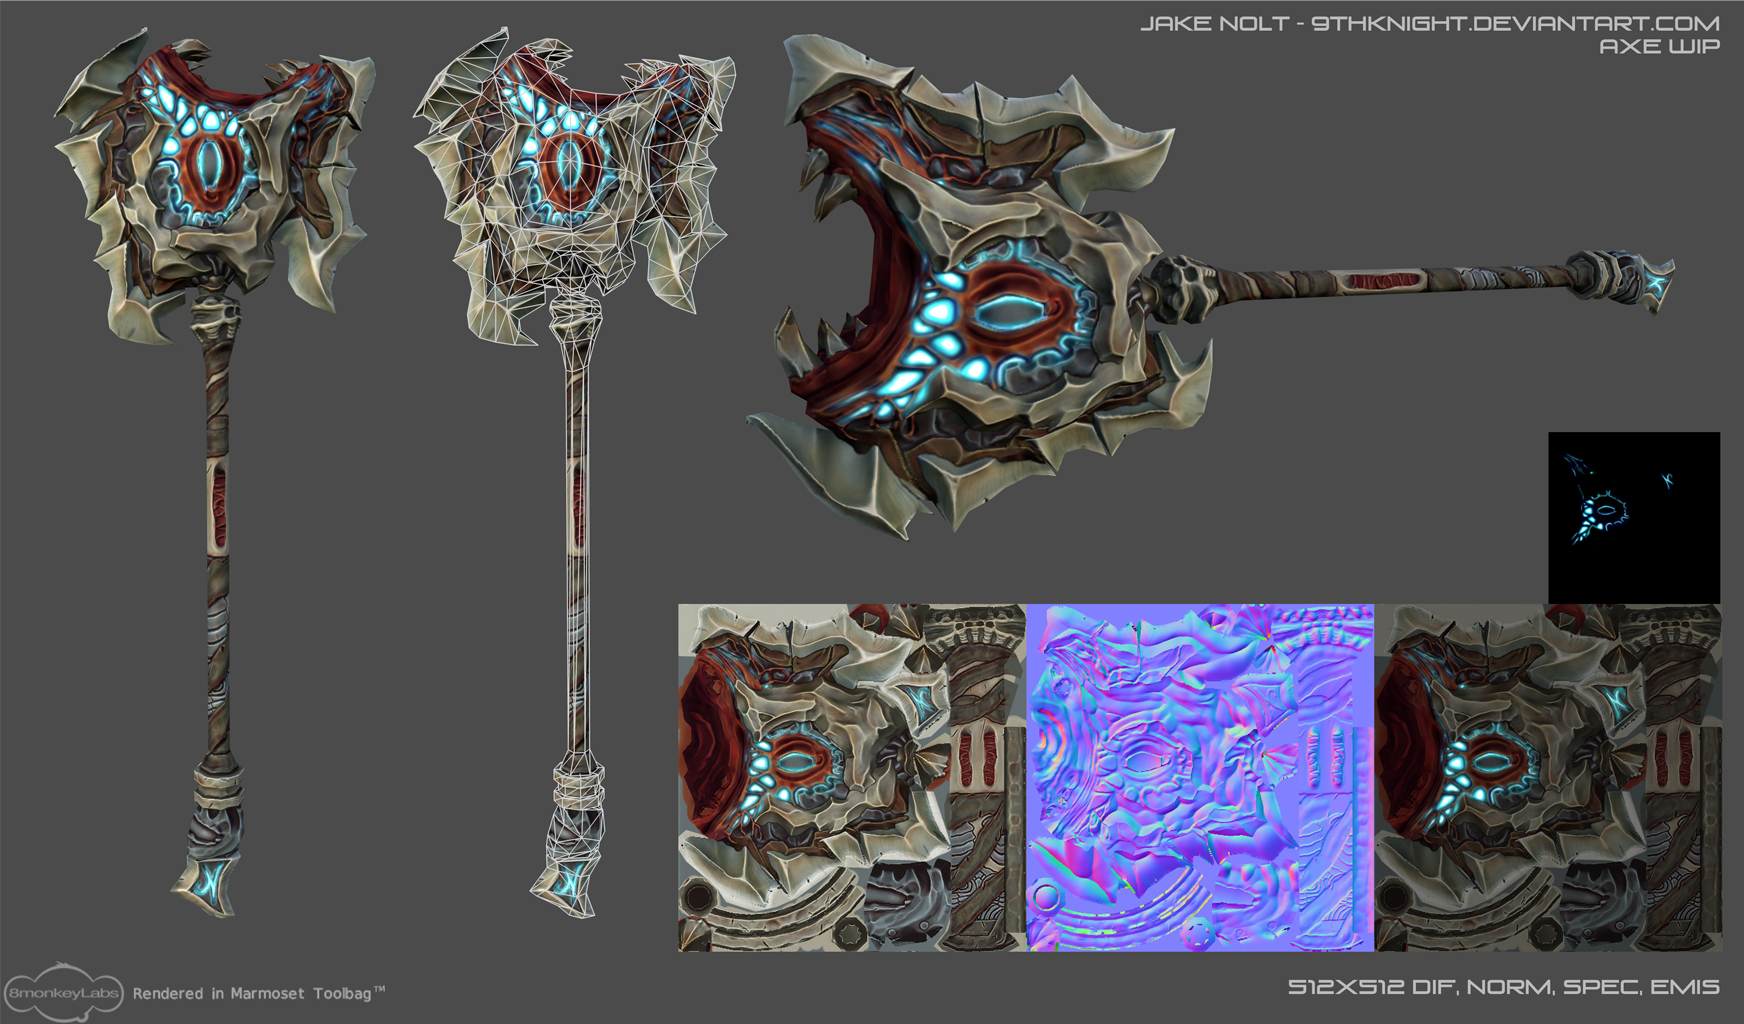 axe_wip_6_by_9thknight-d4tpx9v.jpg